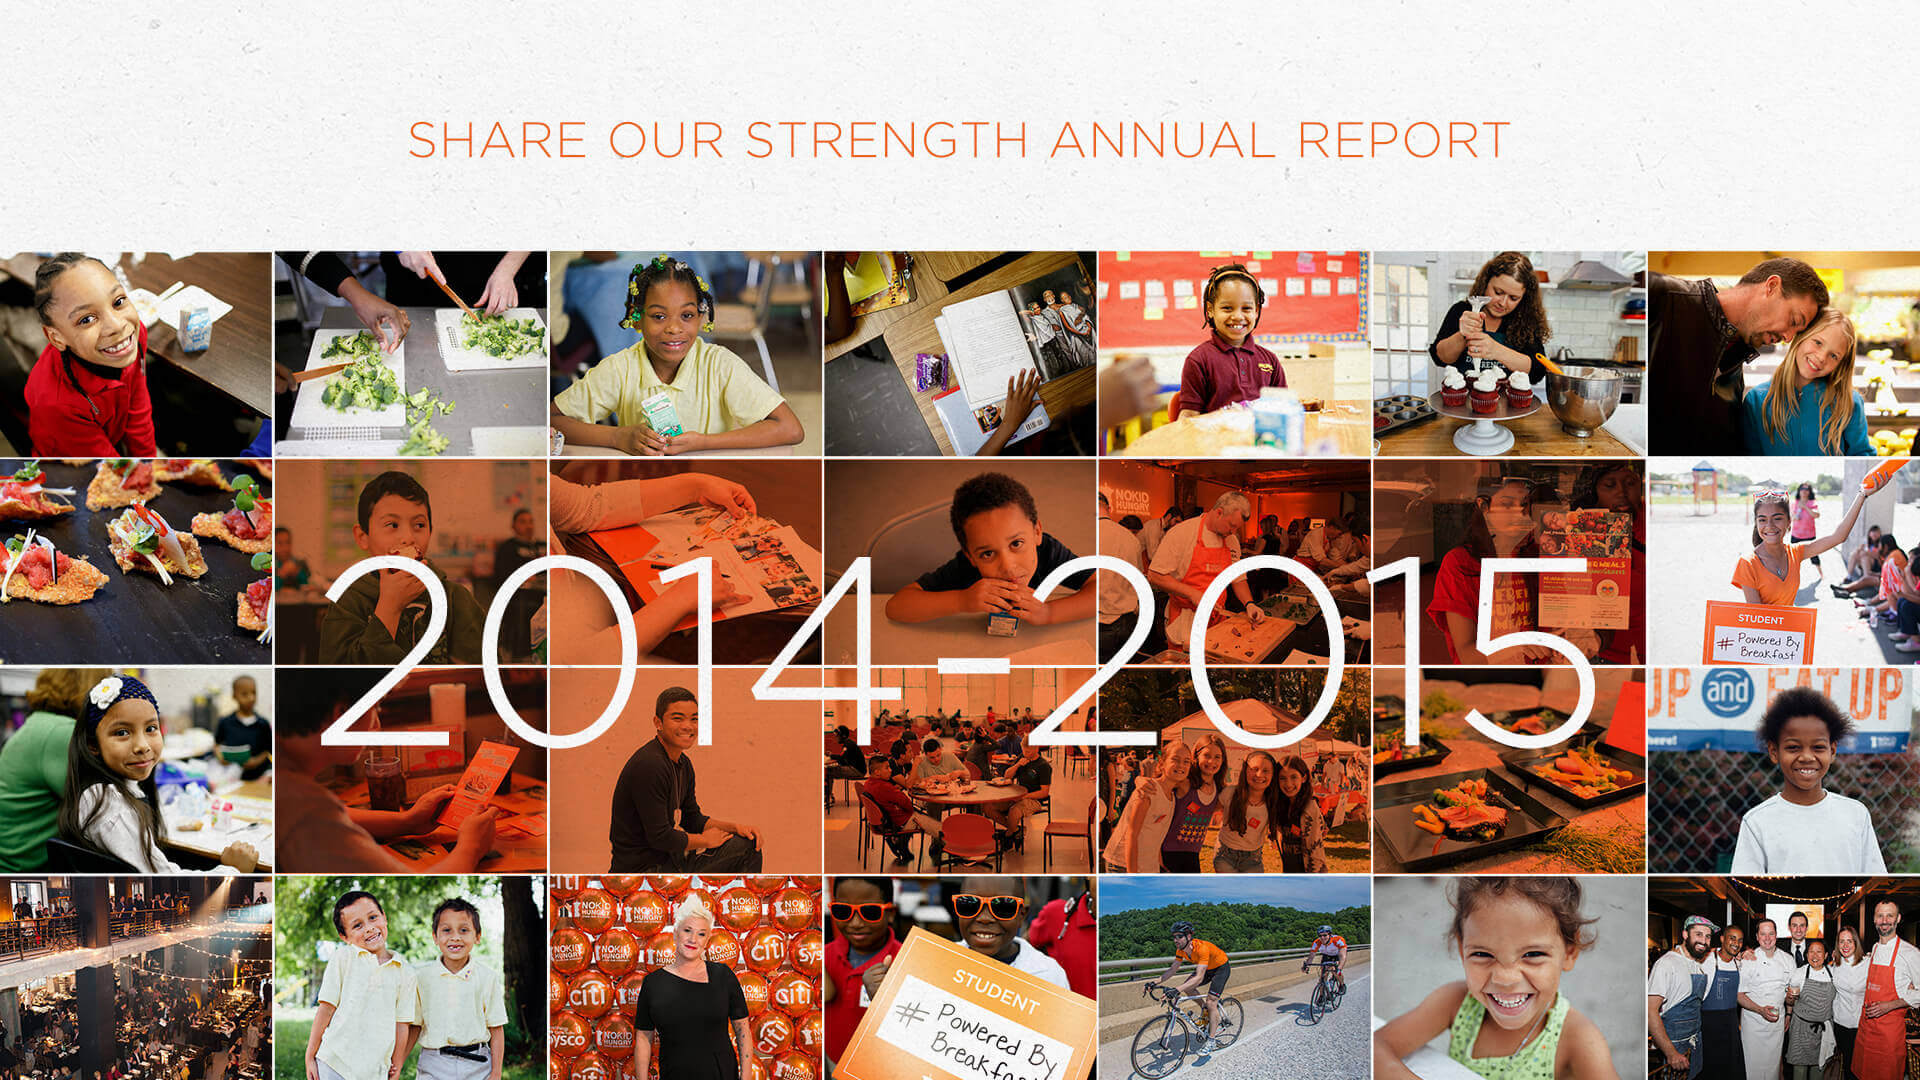 Share Our Strength's 2014-2015 Annual Report